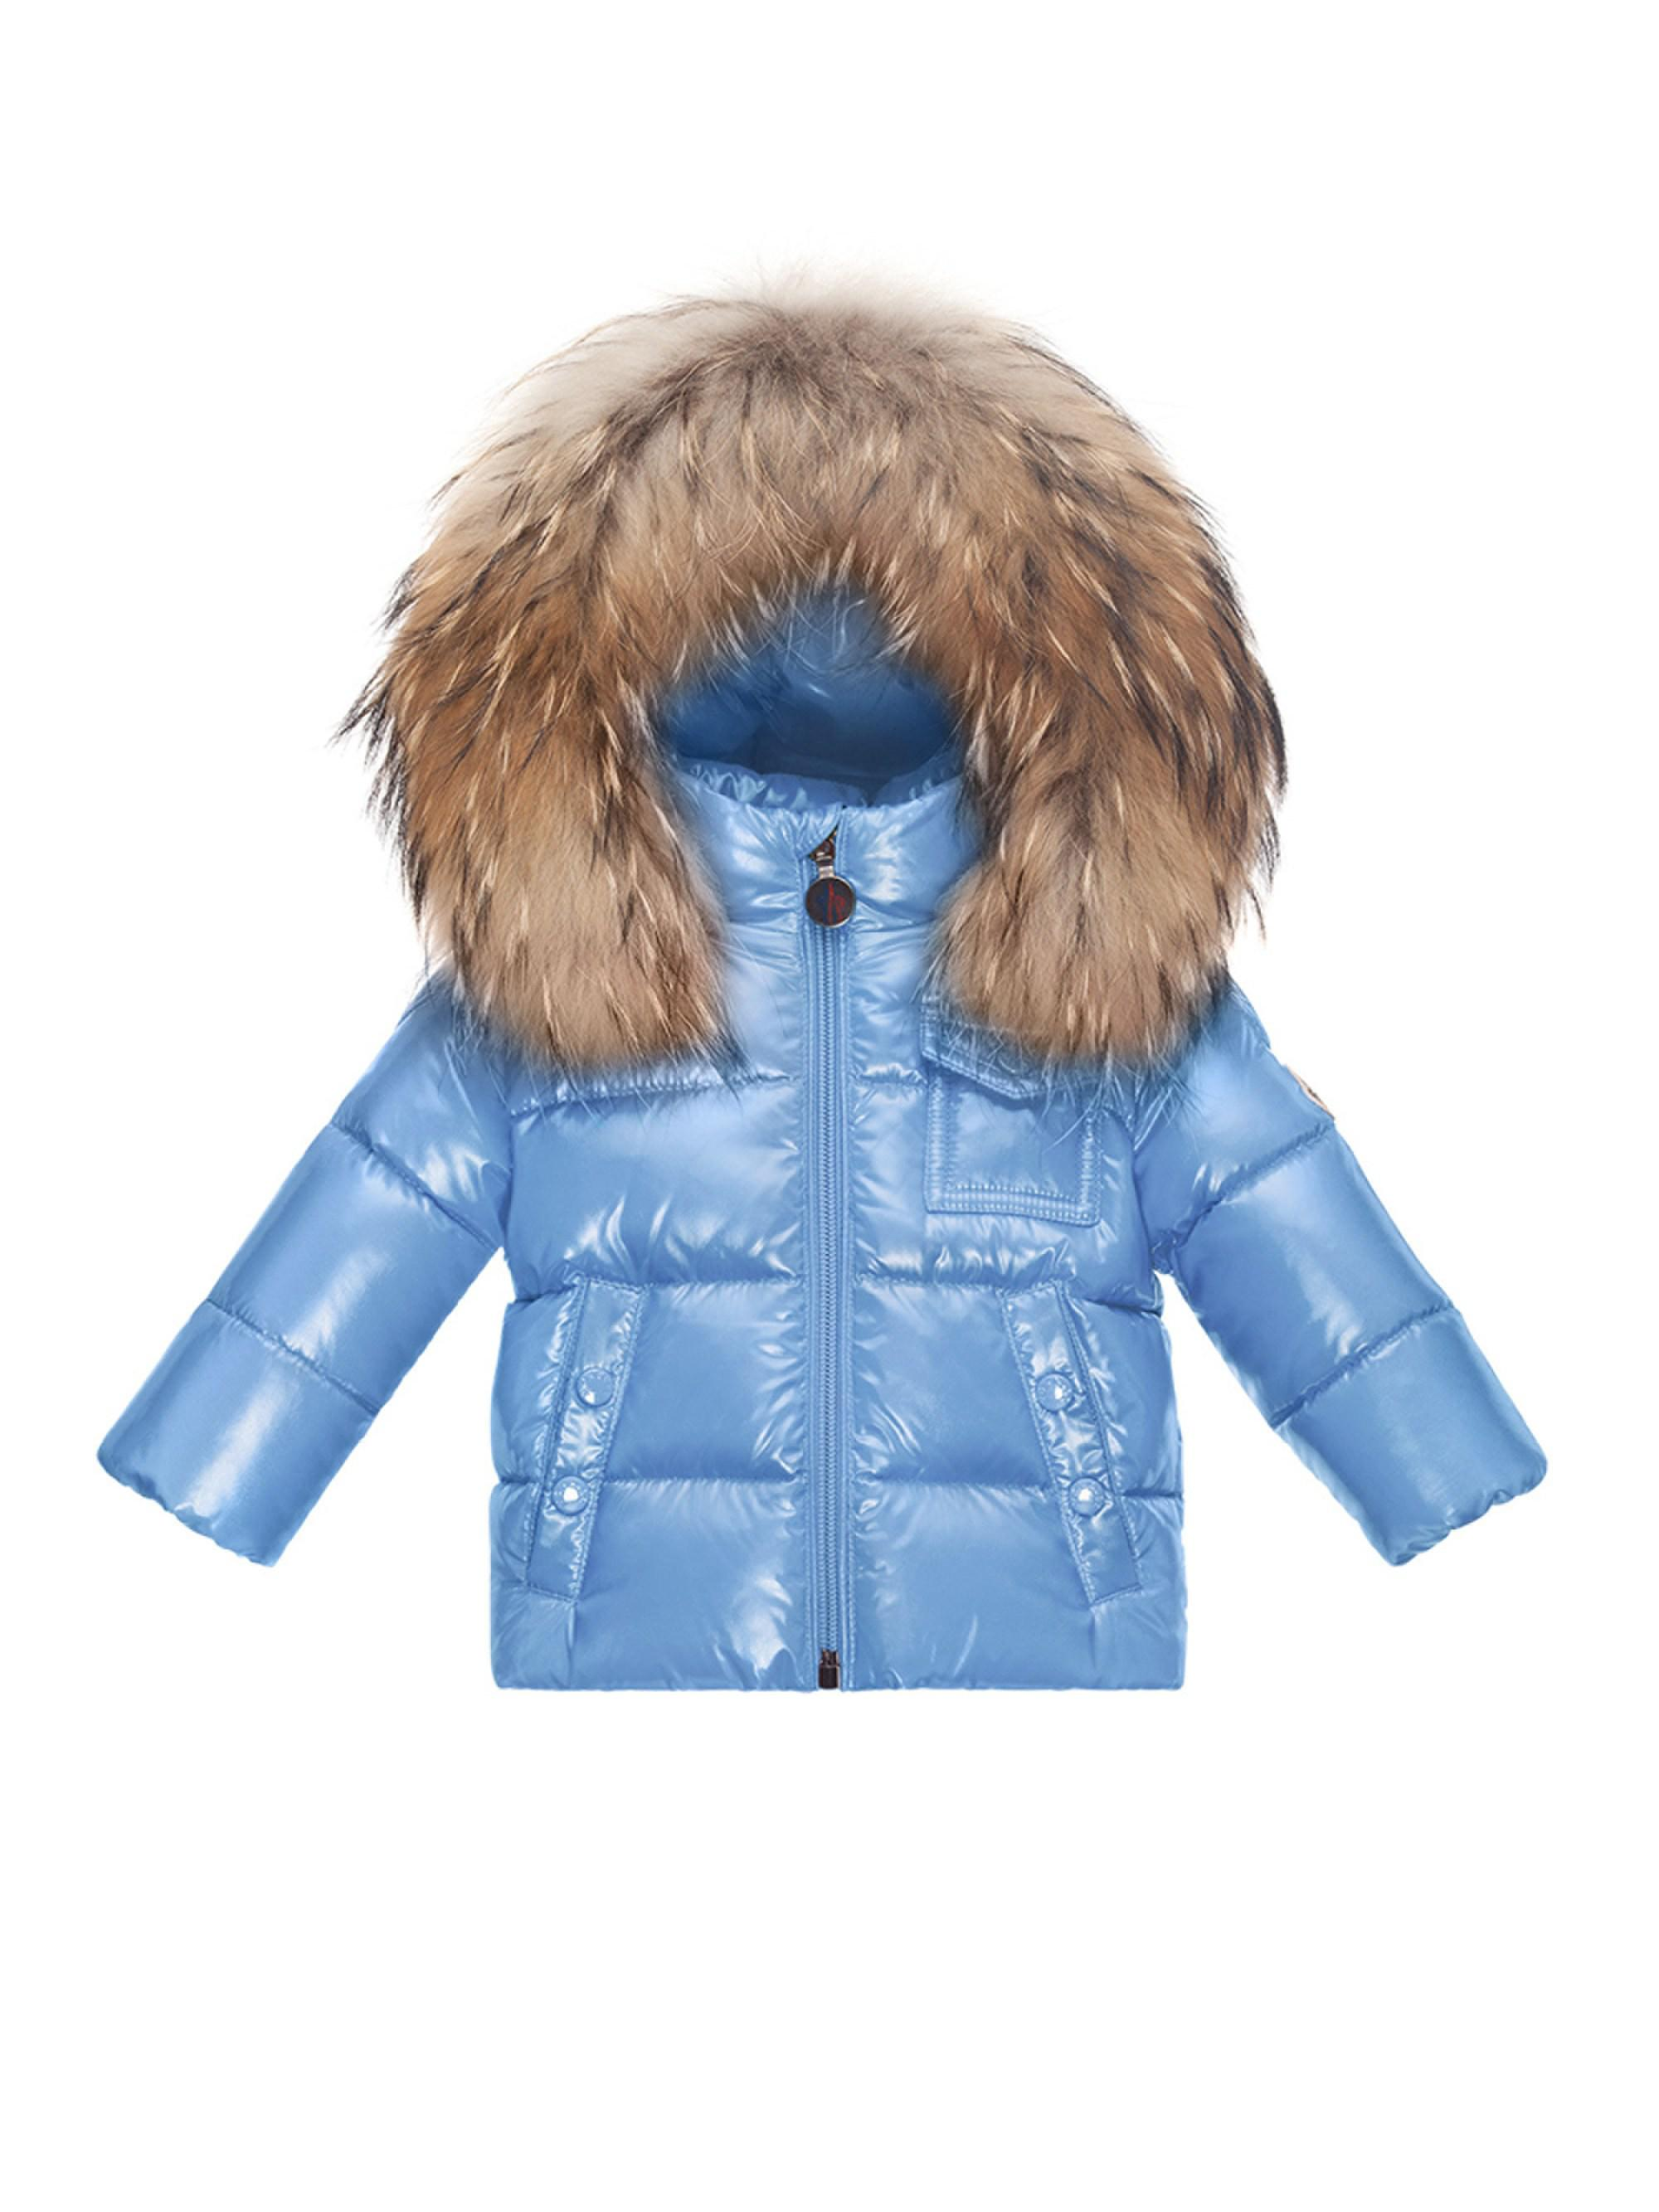 e858c62801f3 Moncler Baby Boy s Fur-trim Puffer Jacket in Blue - Lyst